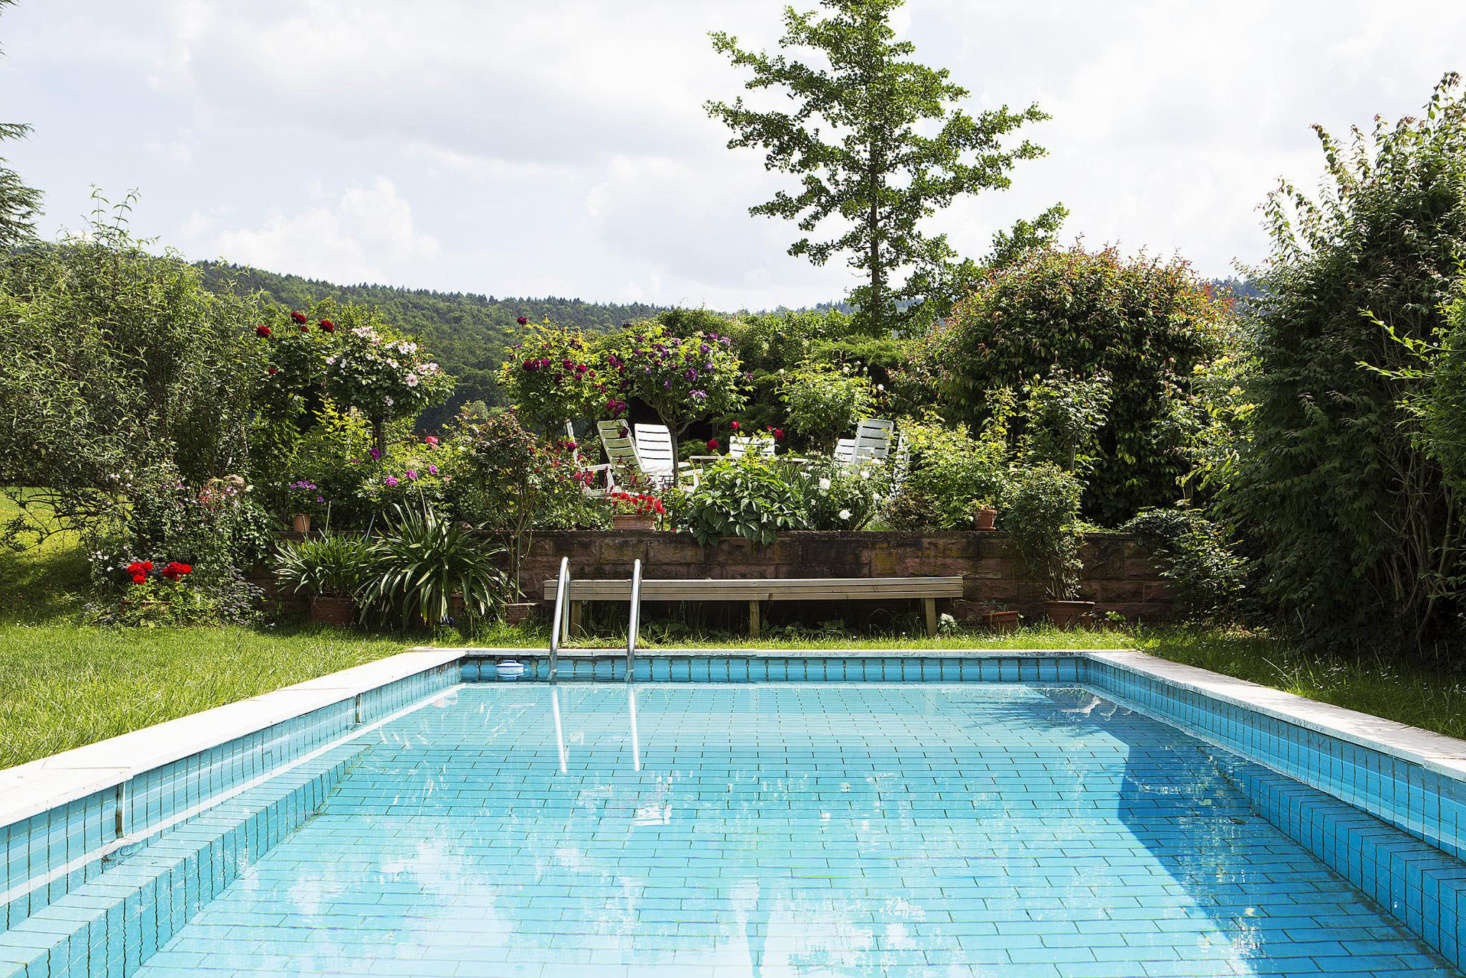 A tiled swimming pool and a raised deck are sited on the side of the house to avoid disrupting views of the countryside.